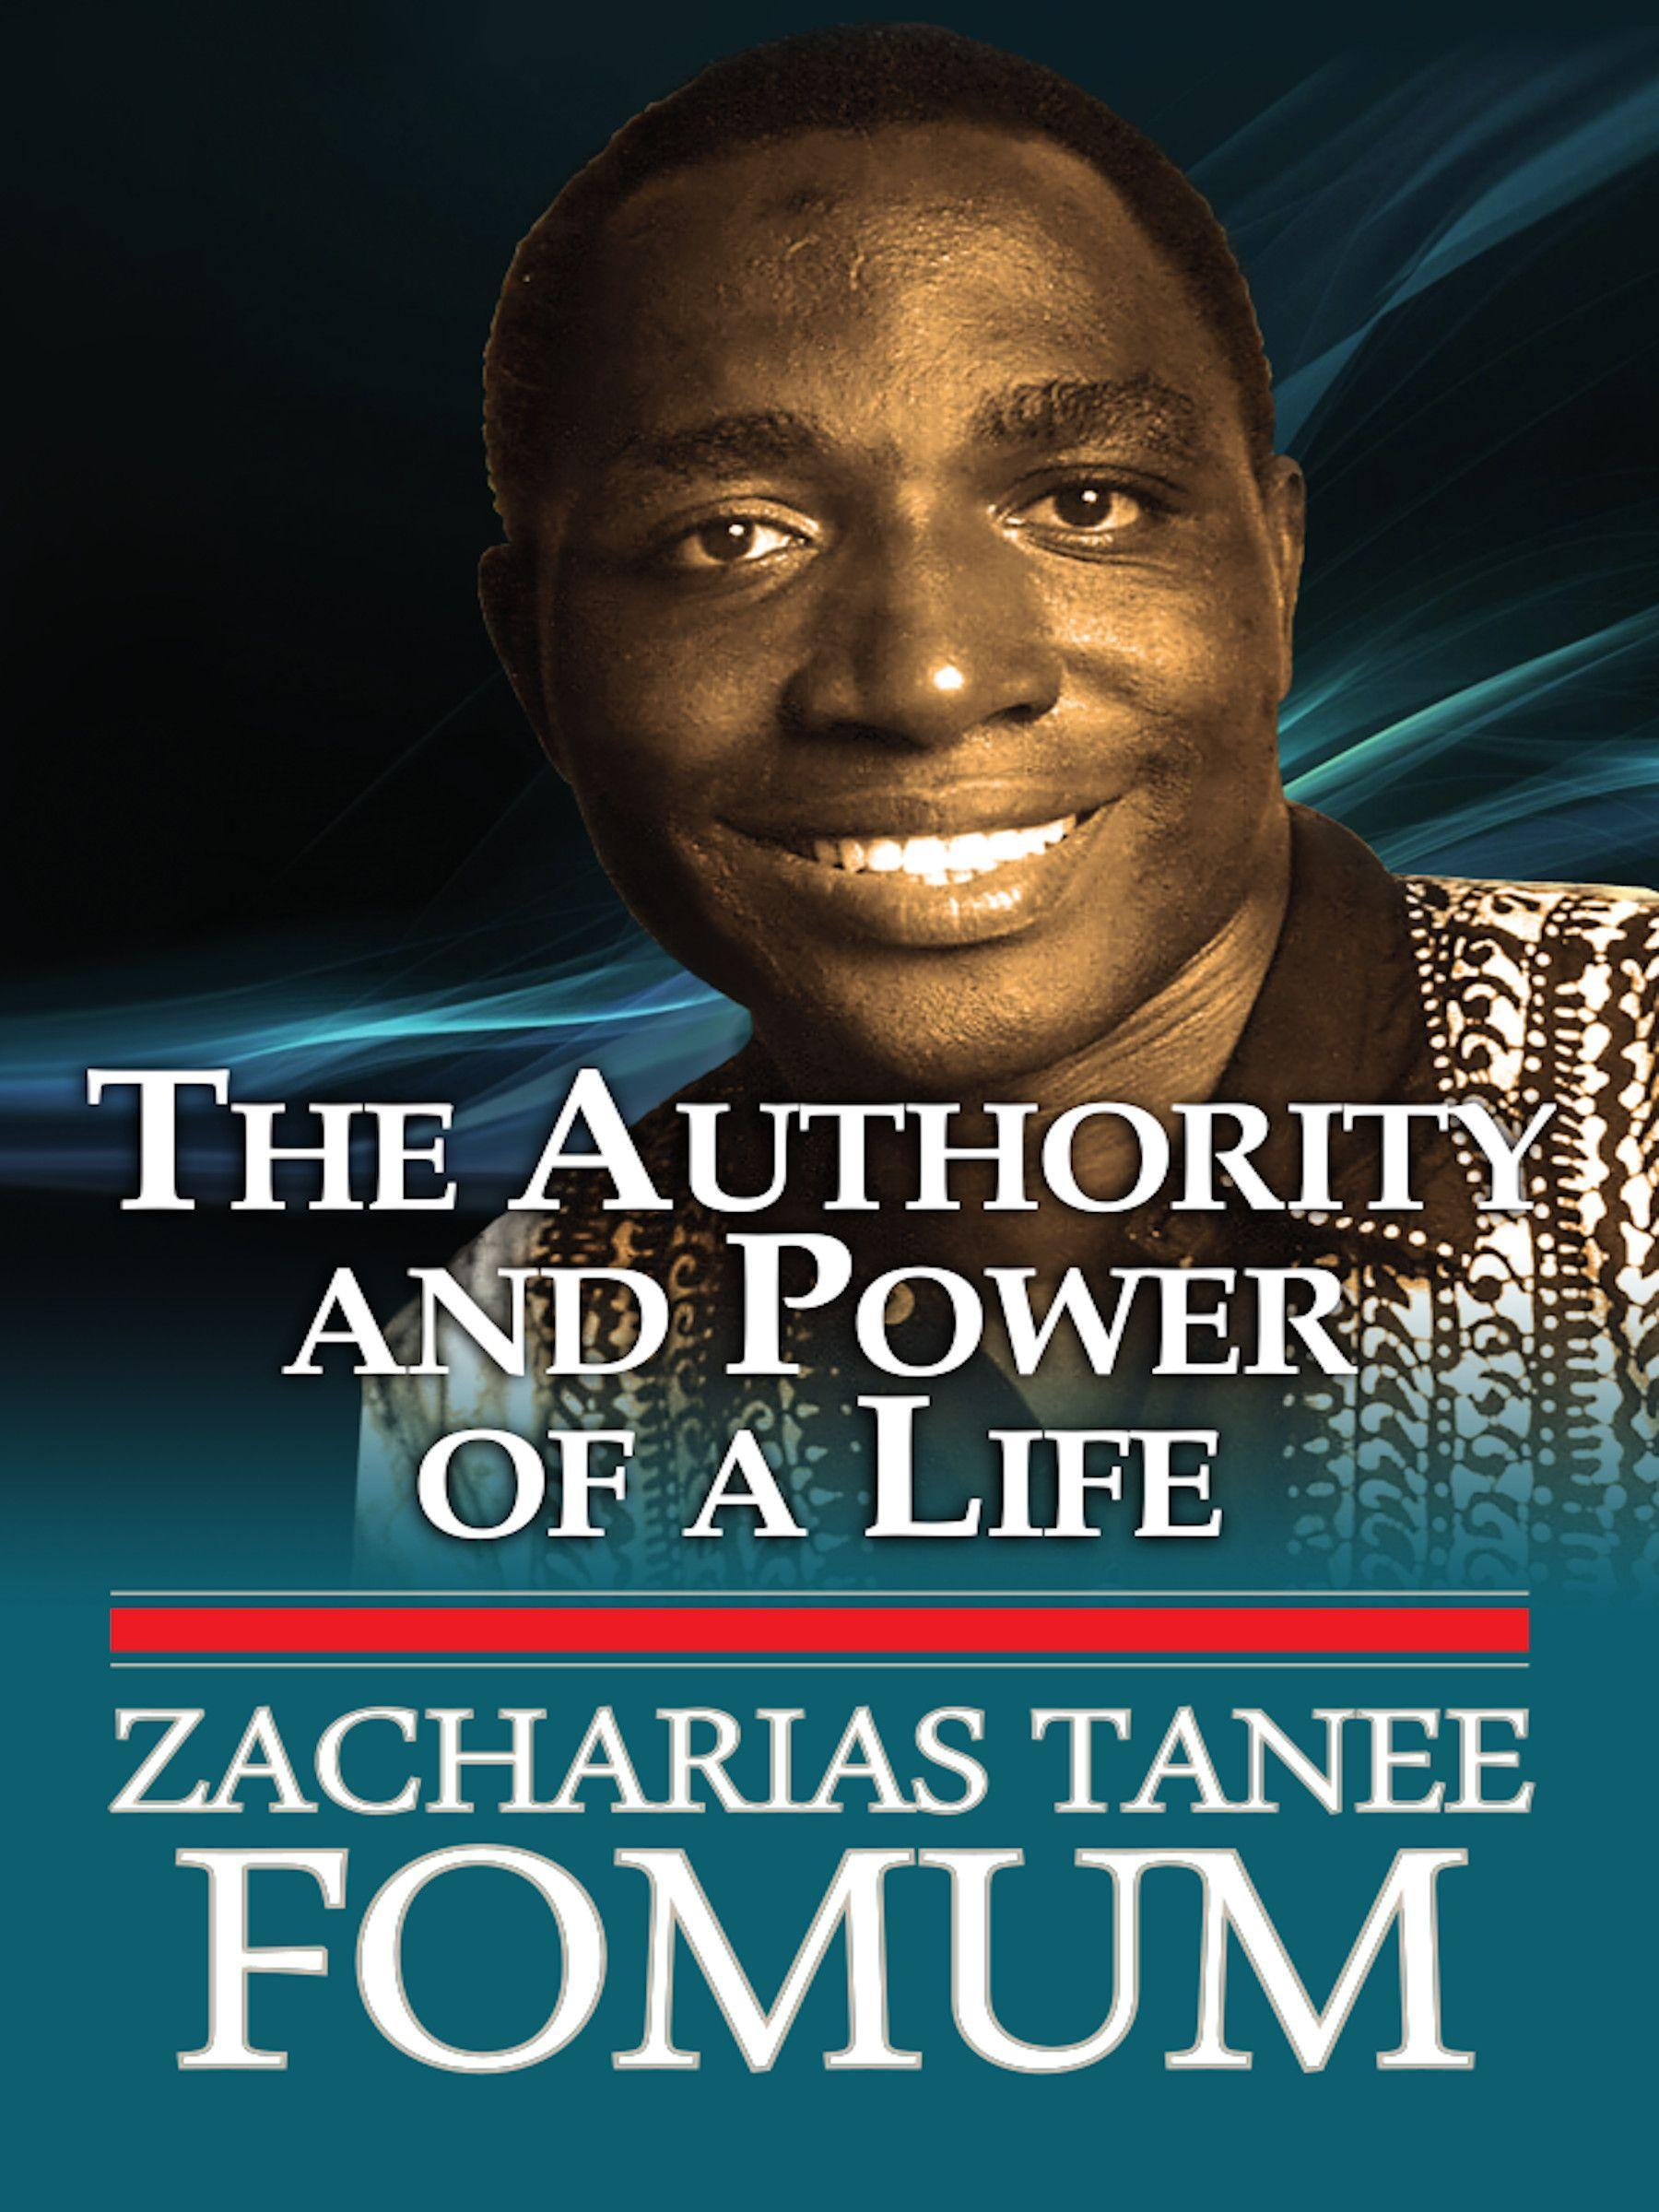 The Authority And Power Of A Life